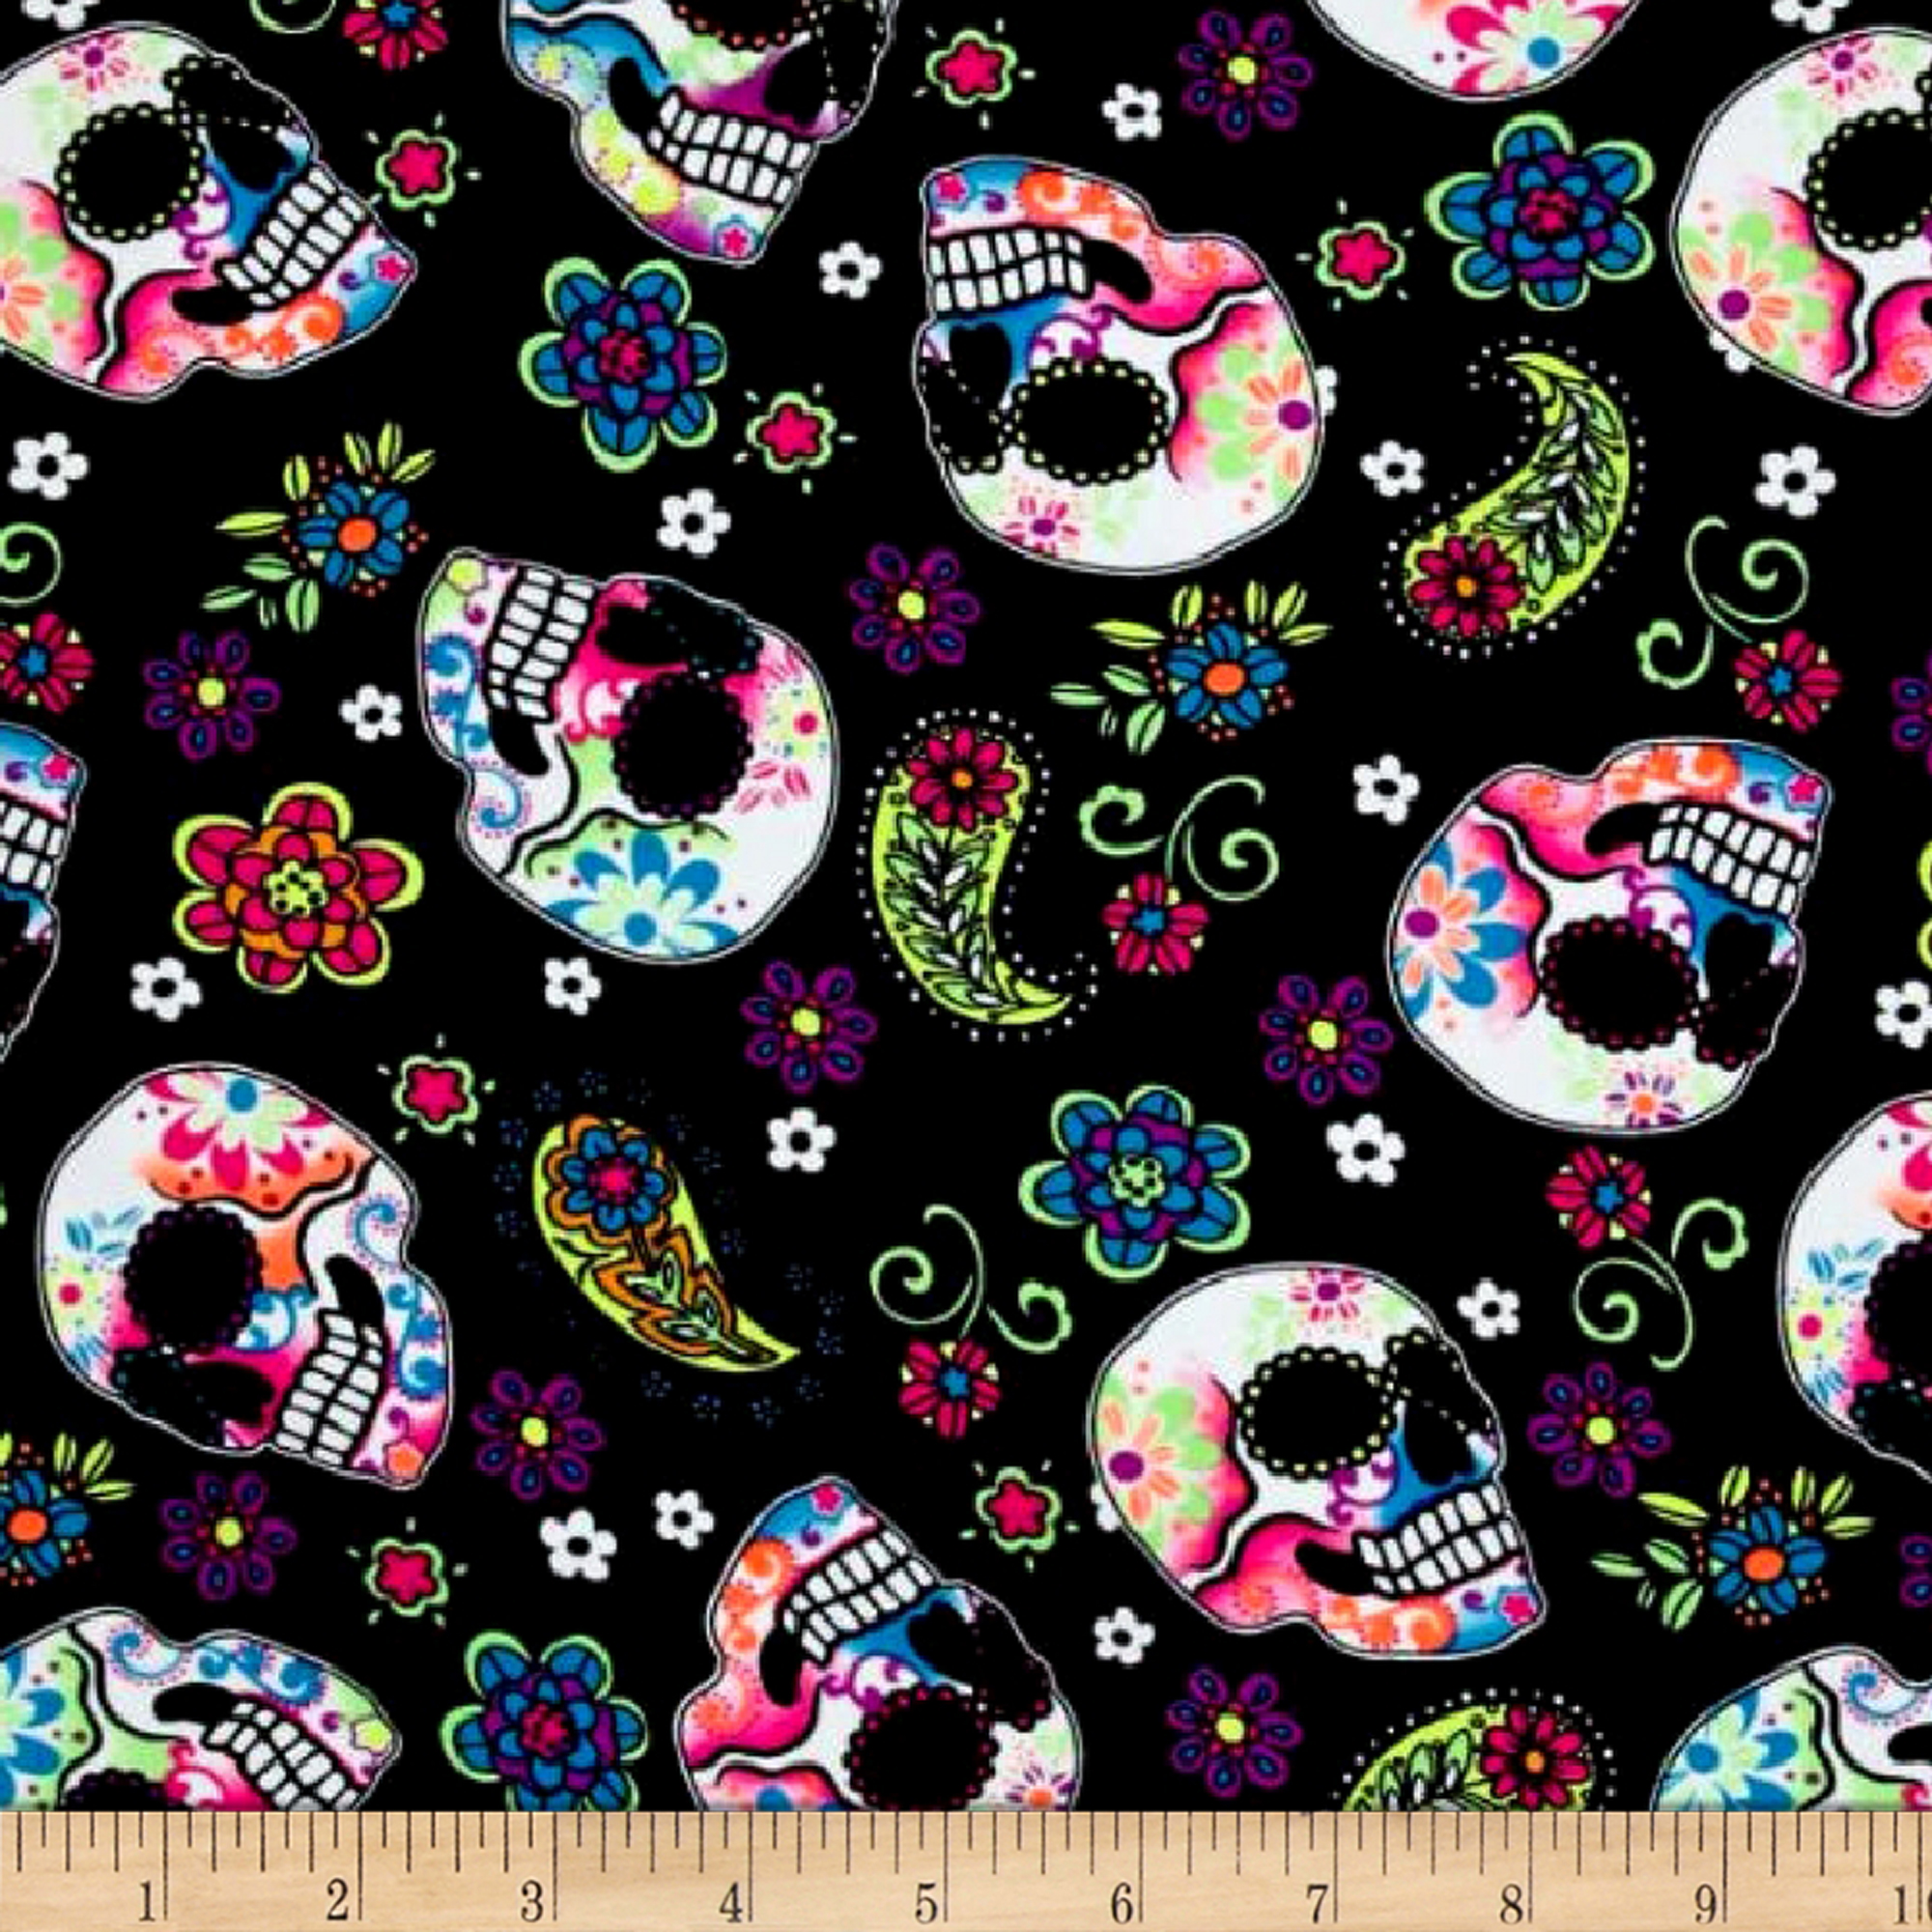 Pine Crest Fabrics Sugar Skulls Athletic Knit Black and Green Neon 0586141